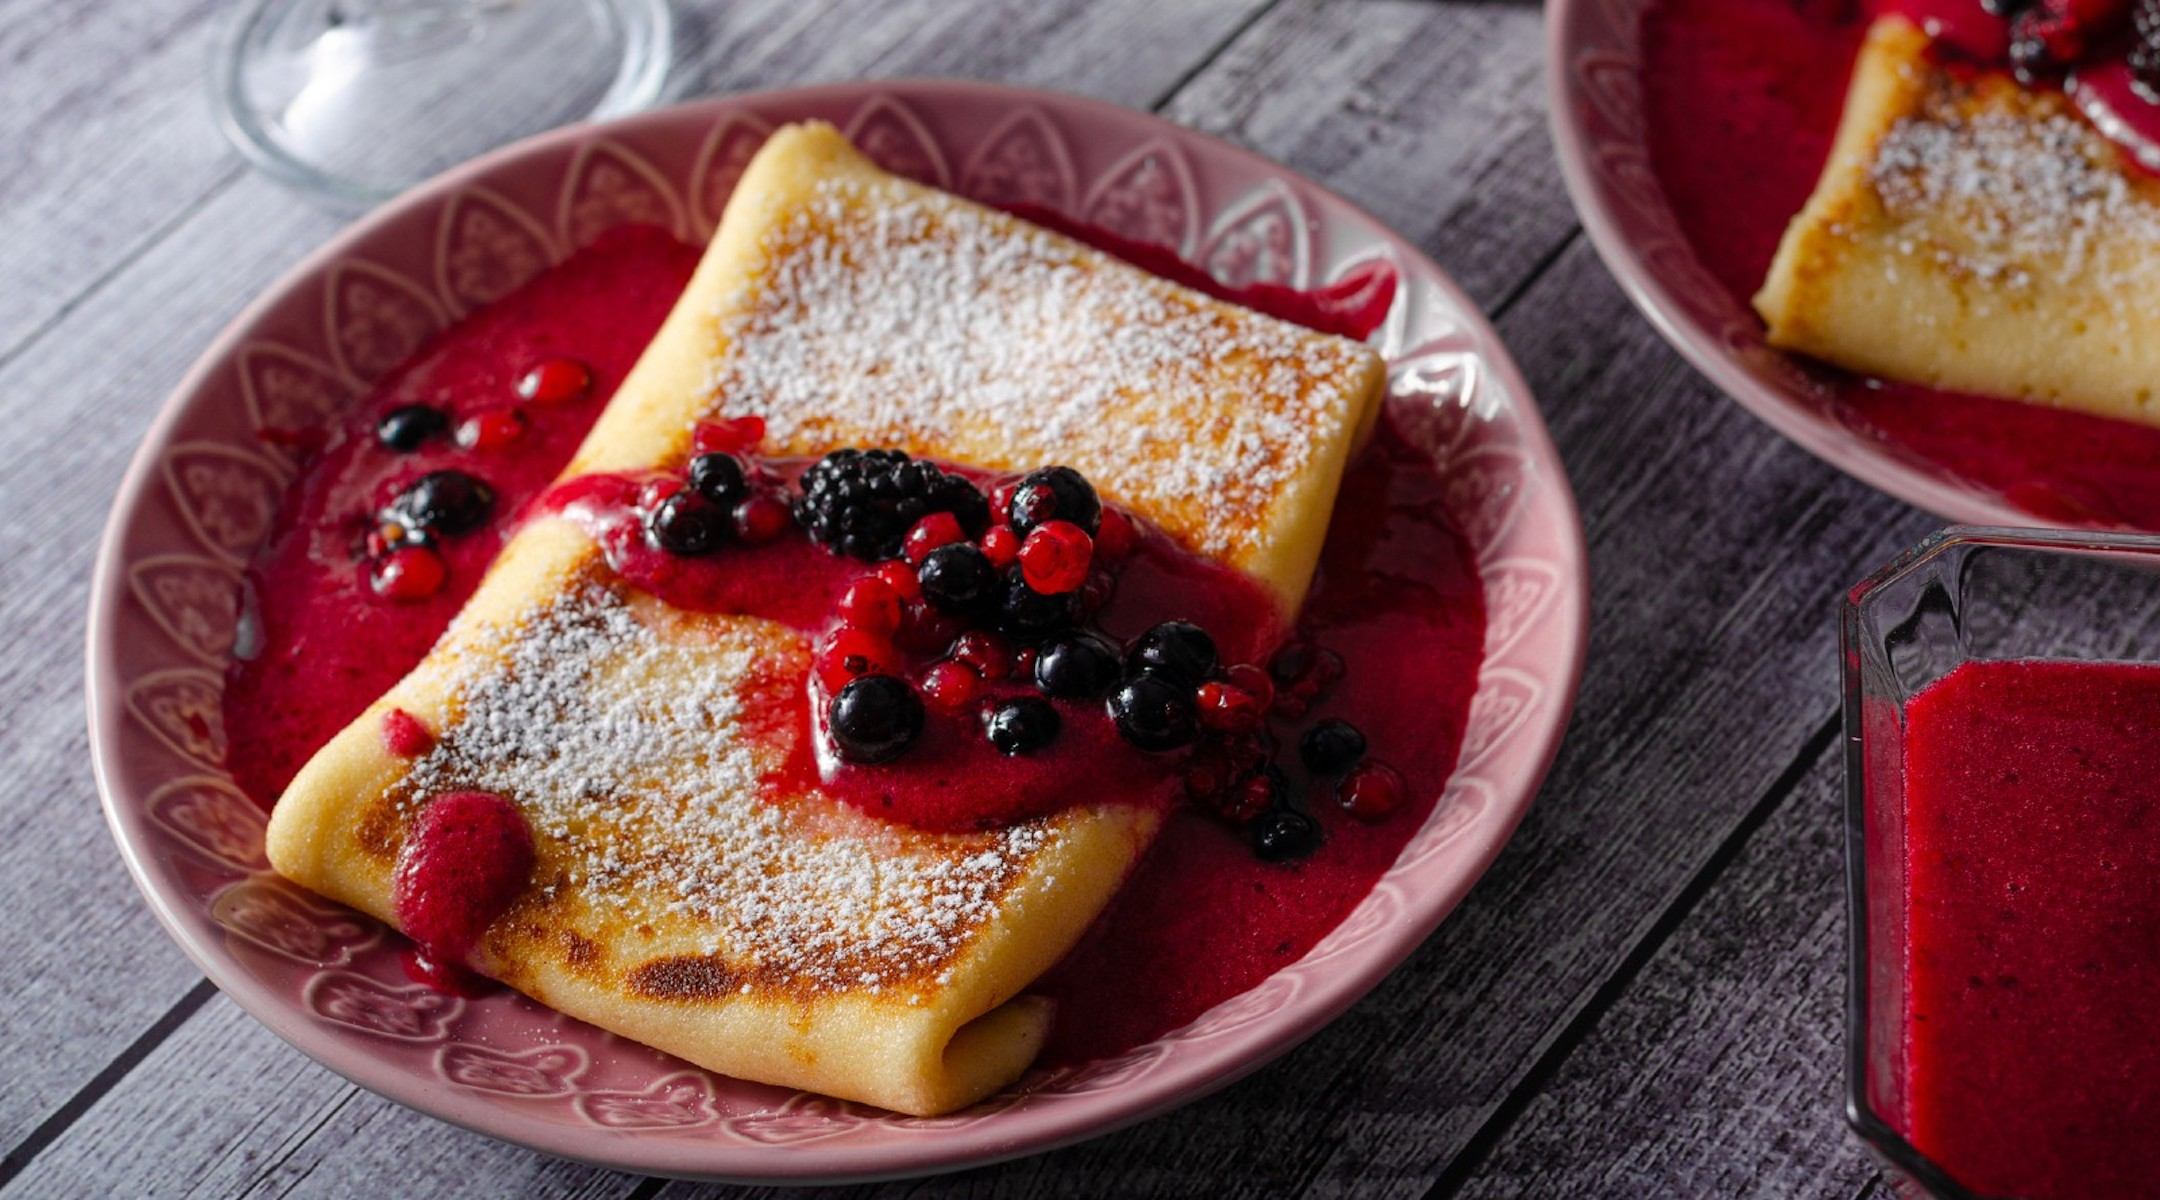 This blintz recipe survived the Holocaust